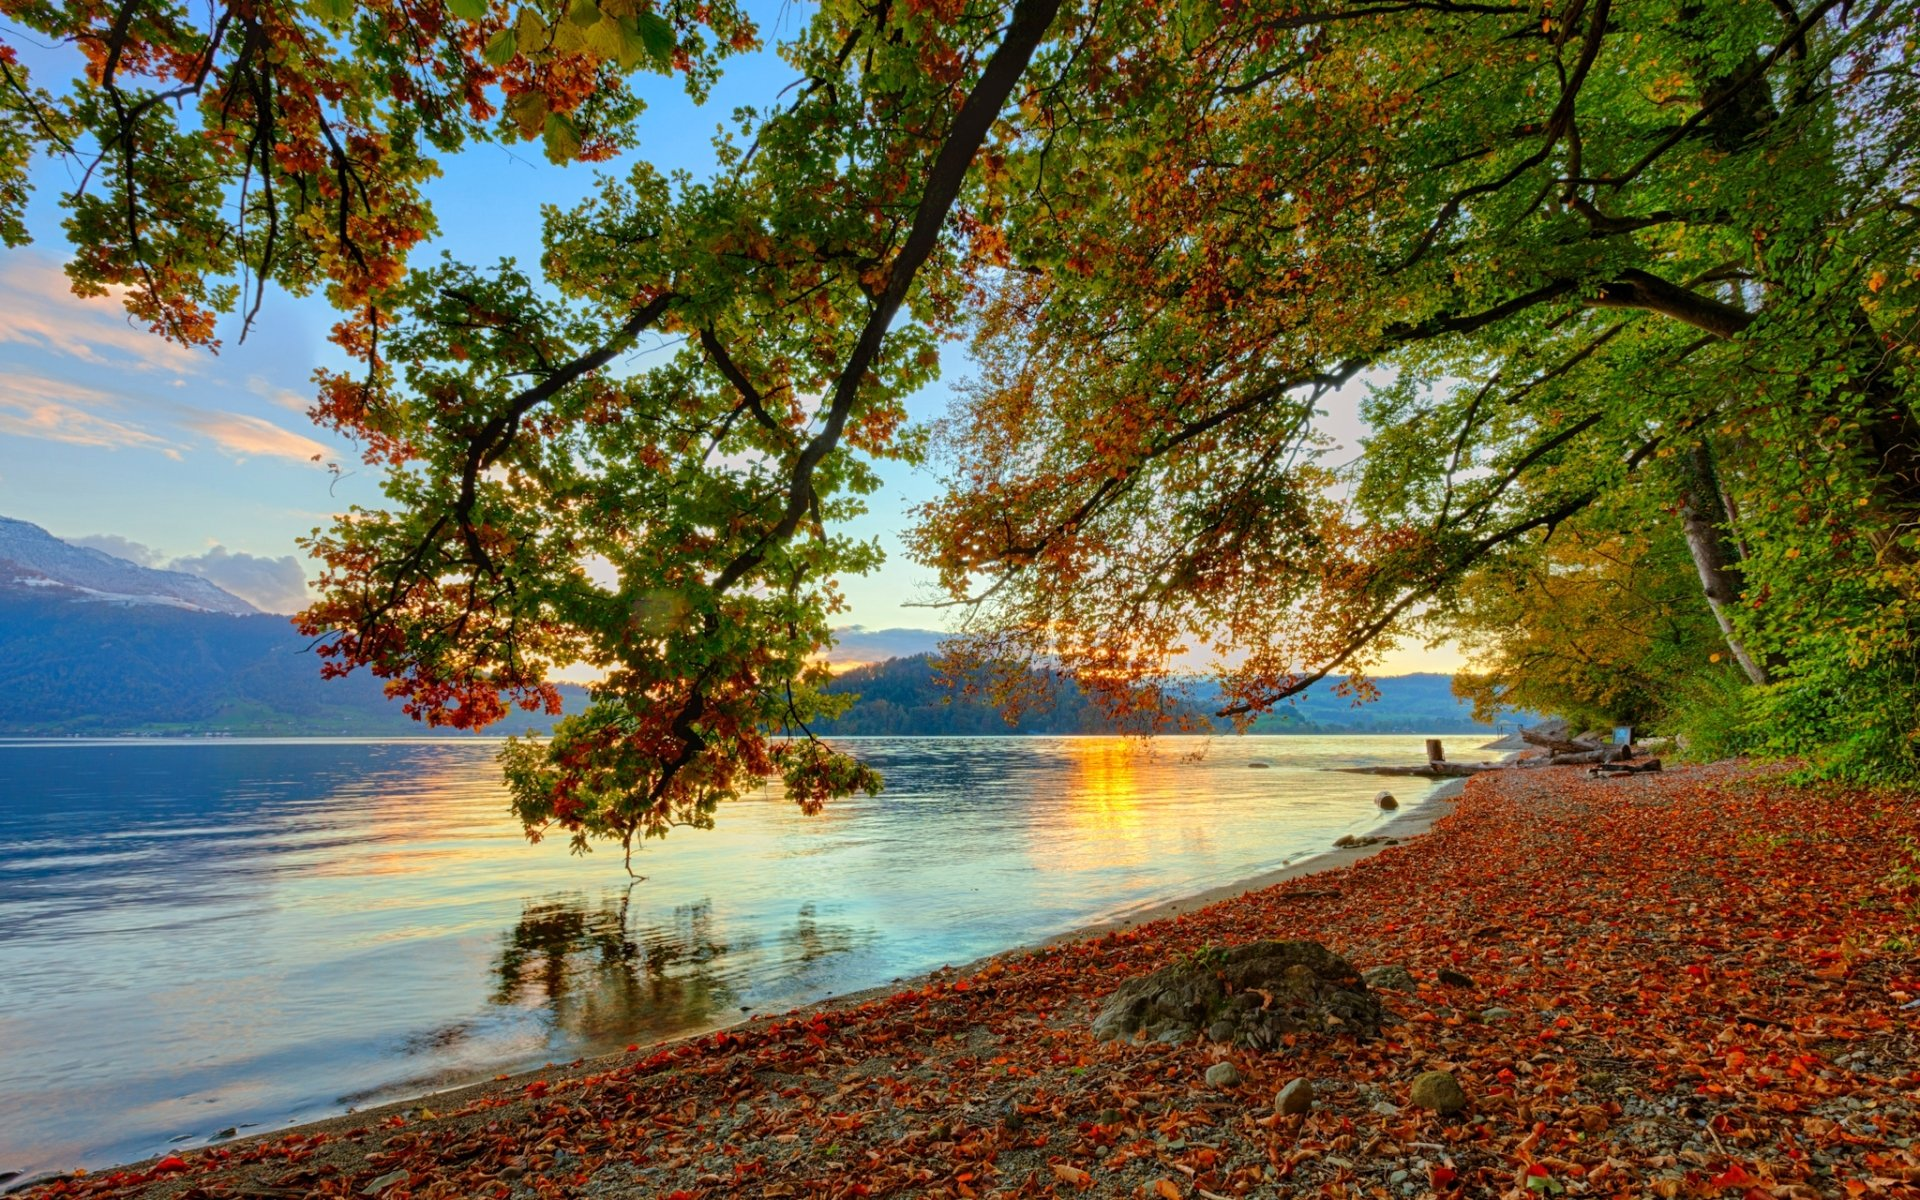 Fall Scenery Hd Wallpaper Autumnal Tune Full Hd Wallpaper And Background 2048x1280